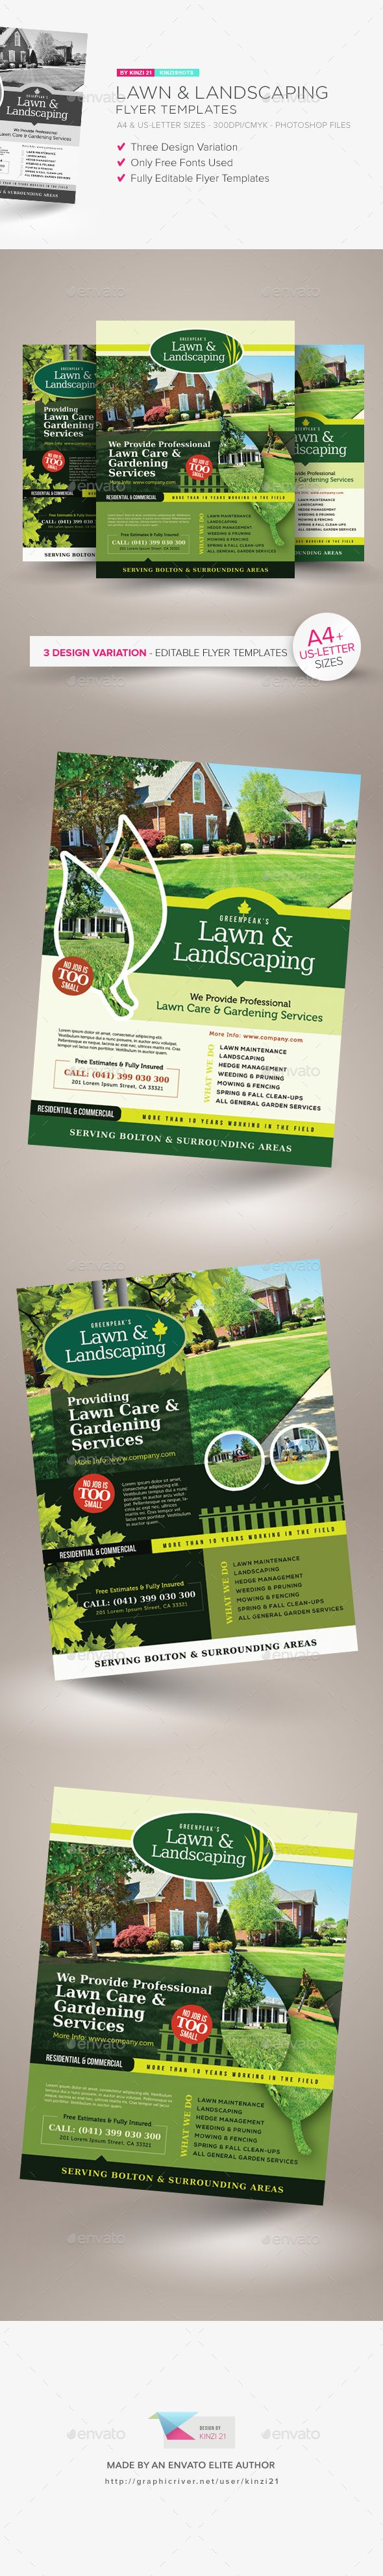 Lawn Landscaping Flyer Templates Psd Flyer Templates Pinterest